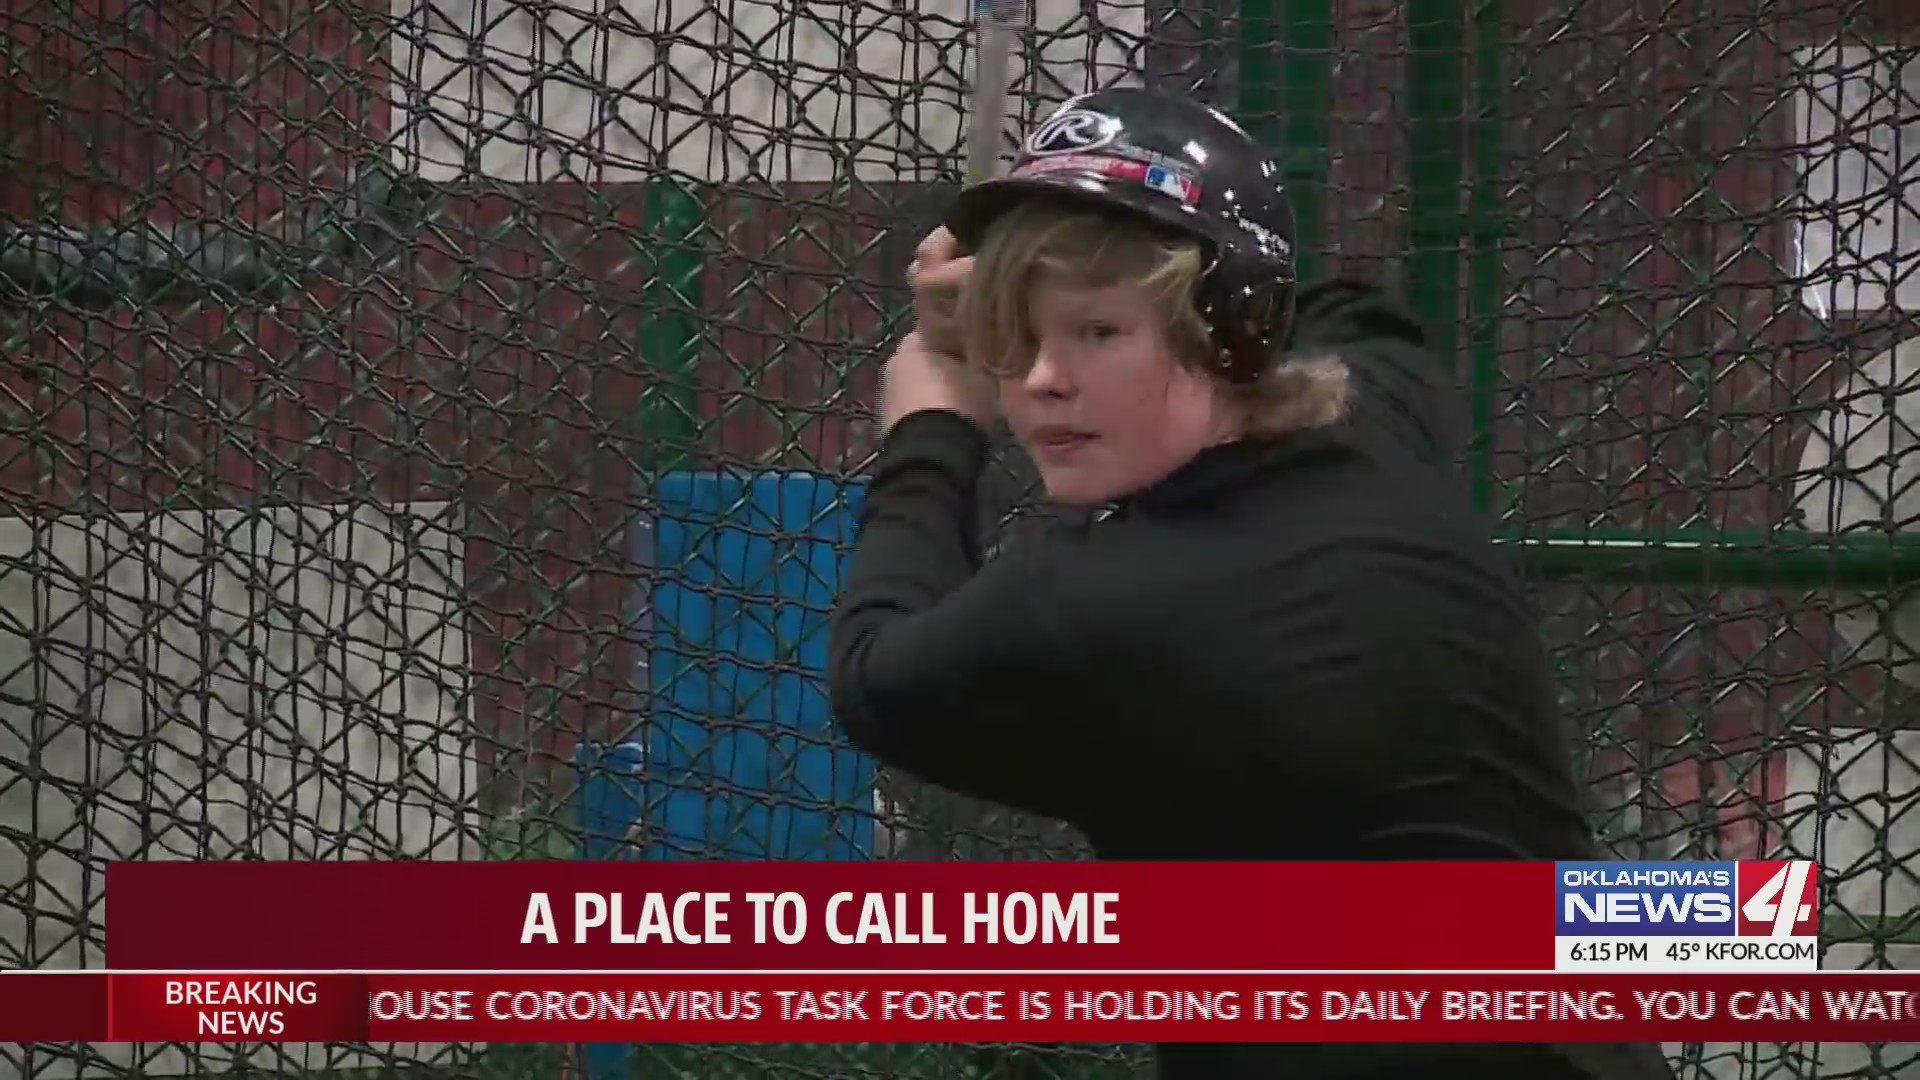 teen boy takes batting stance in batter's cage